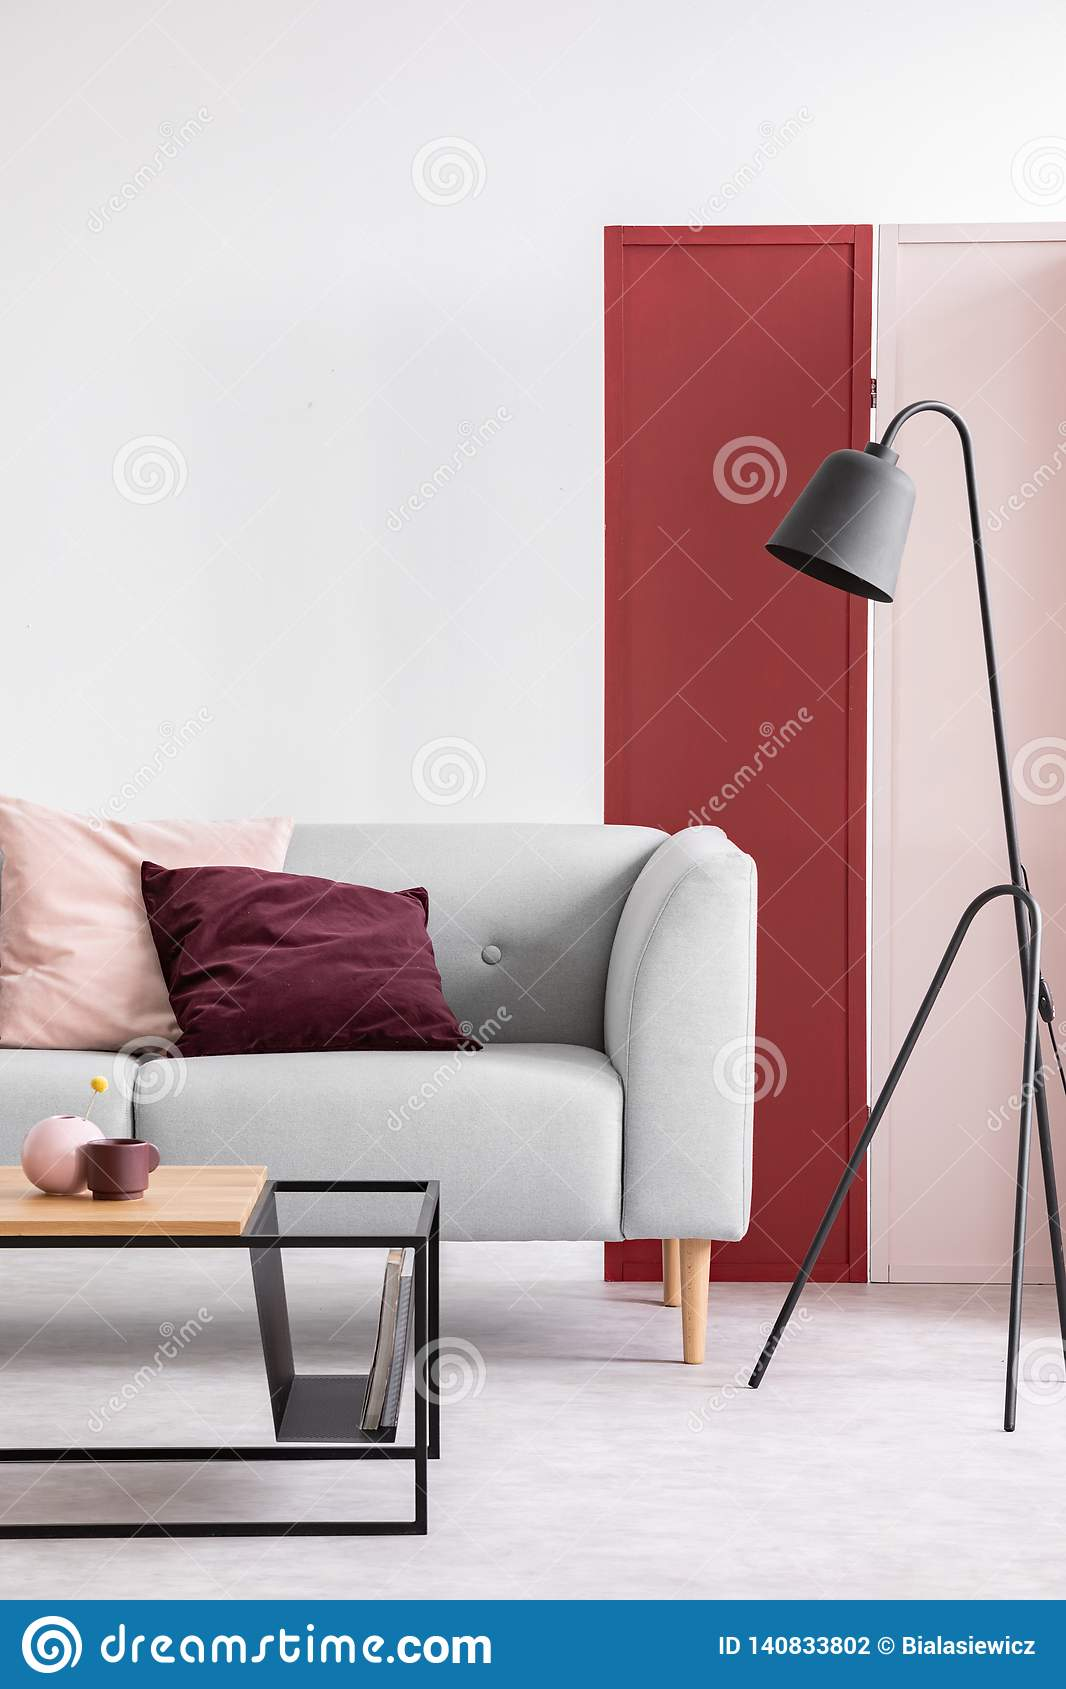 Vertical View Of Pastel Pink And Burgundy Pillows On Grey Sofa In Elegant Scandinavian Living Room With Red Pink And White Wall Stock Photo Image Of Mockup House 140833802